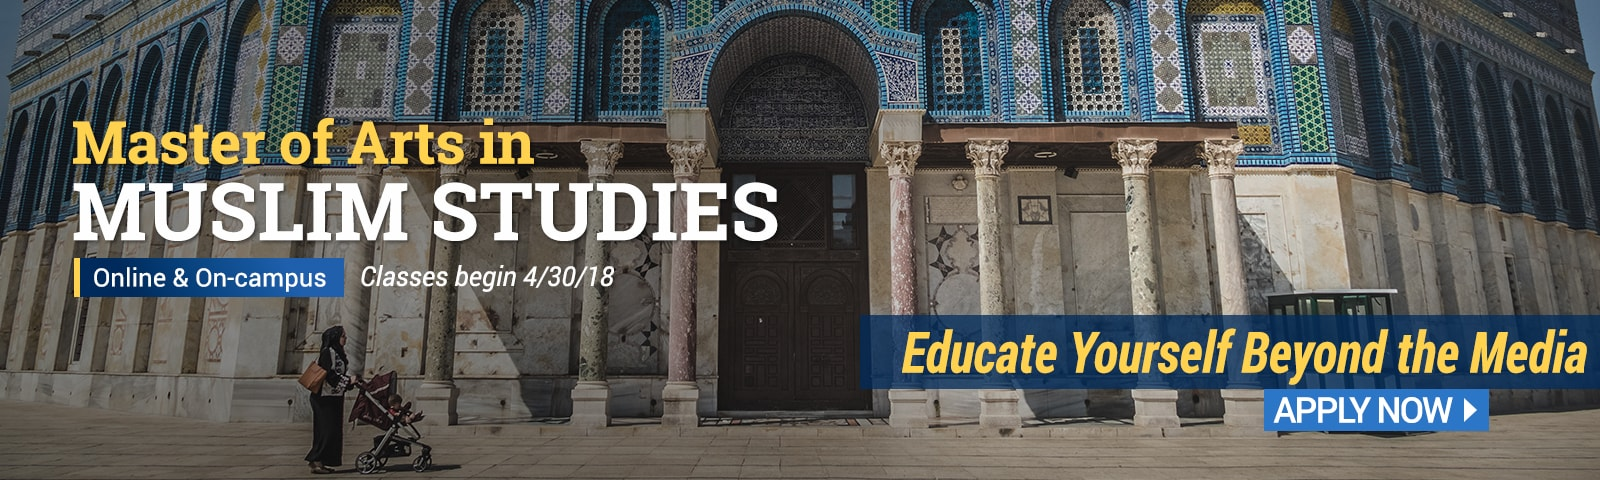 CIU offers a Master of Arts in Muslim Studies. Apply now!